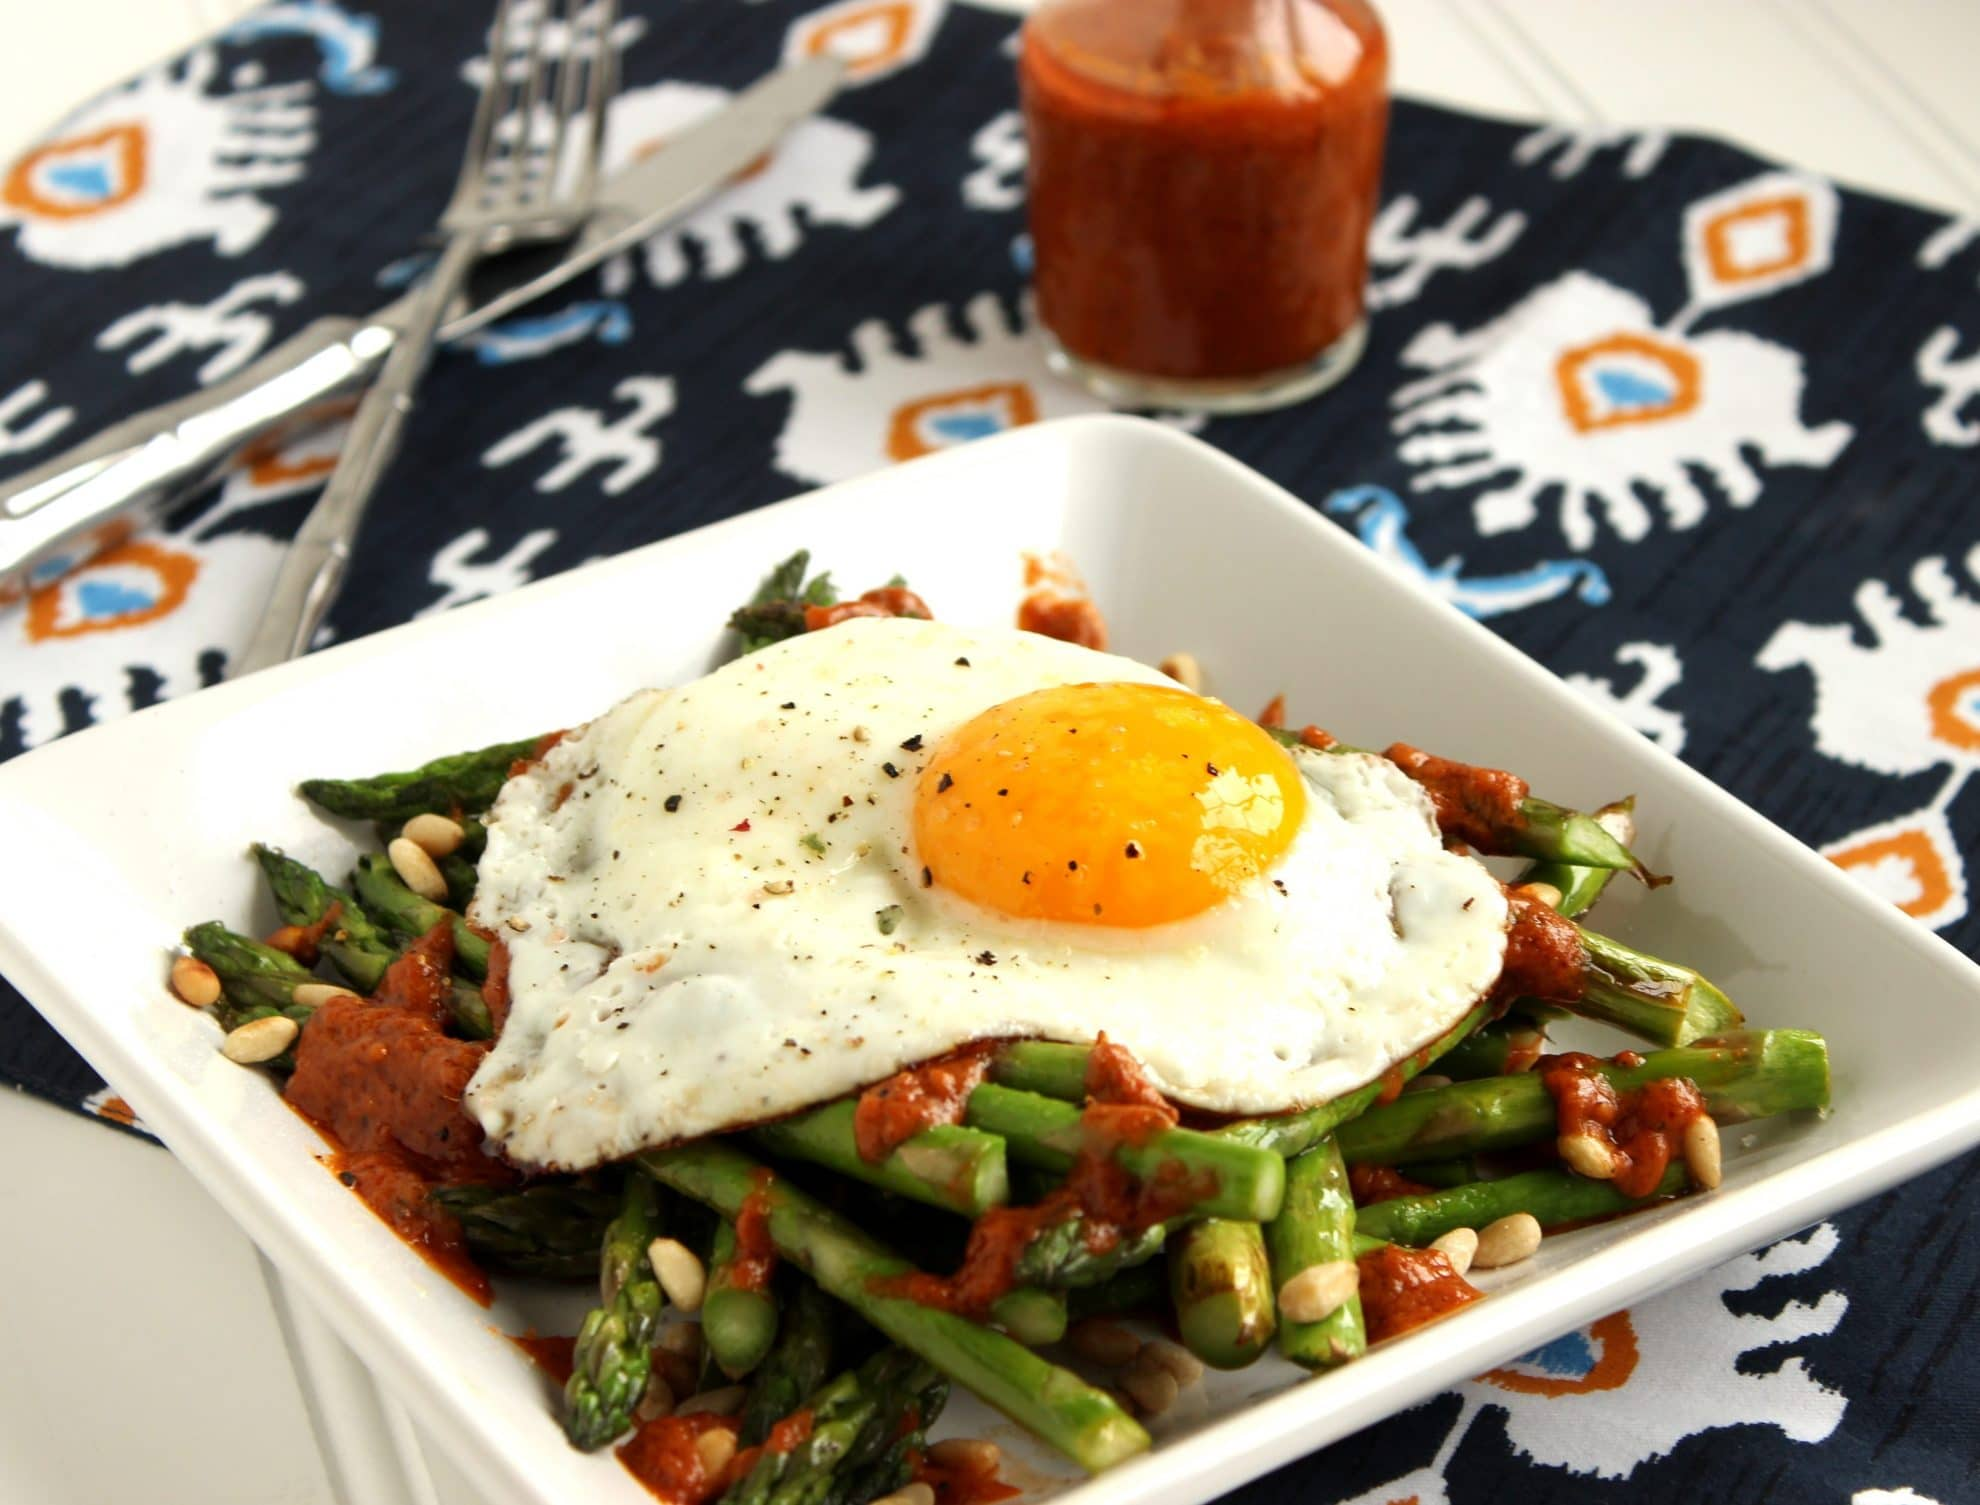 Warm Asparagus Salad with Roasted Tomato Vinaigrette - The Suburban Soapbox